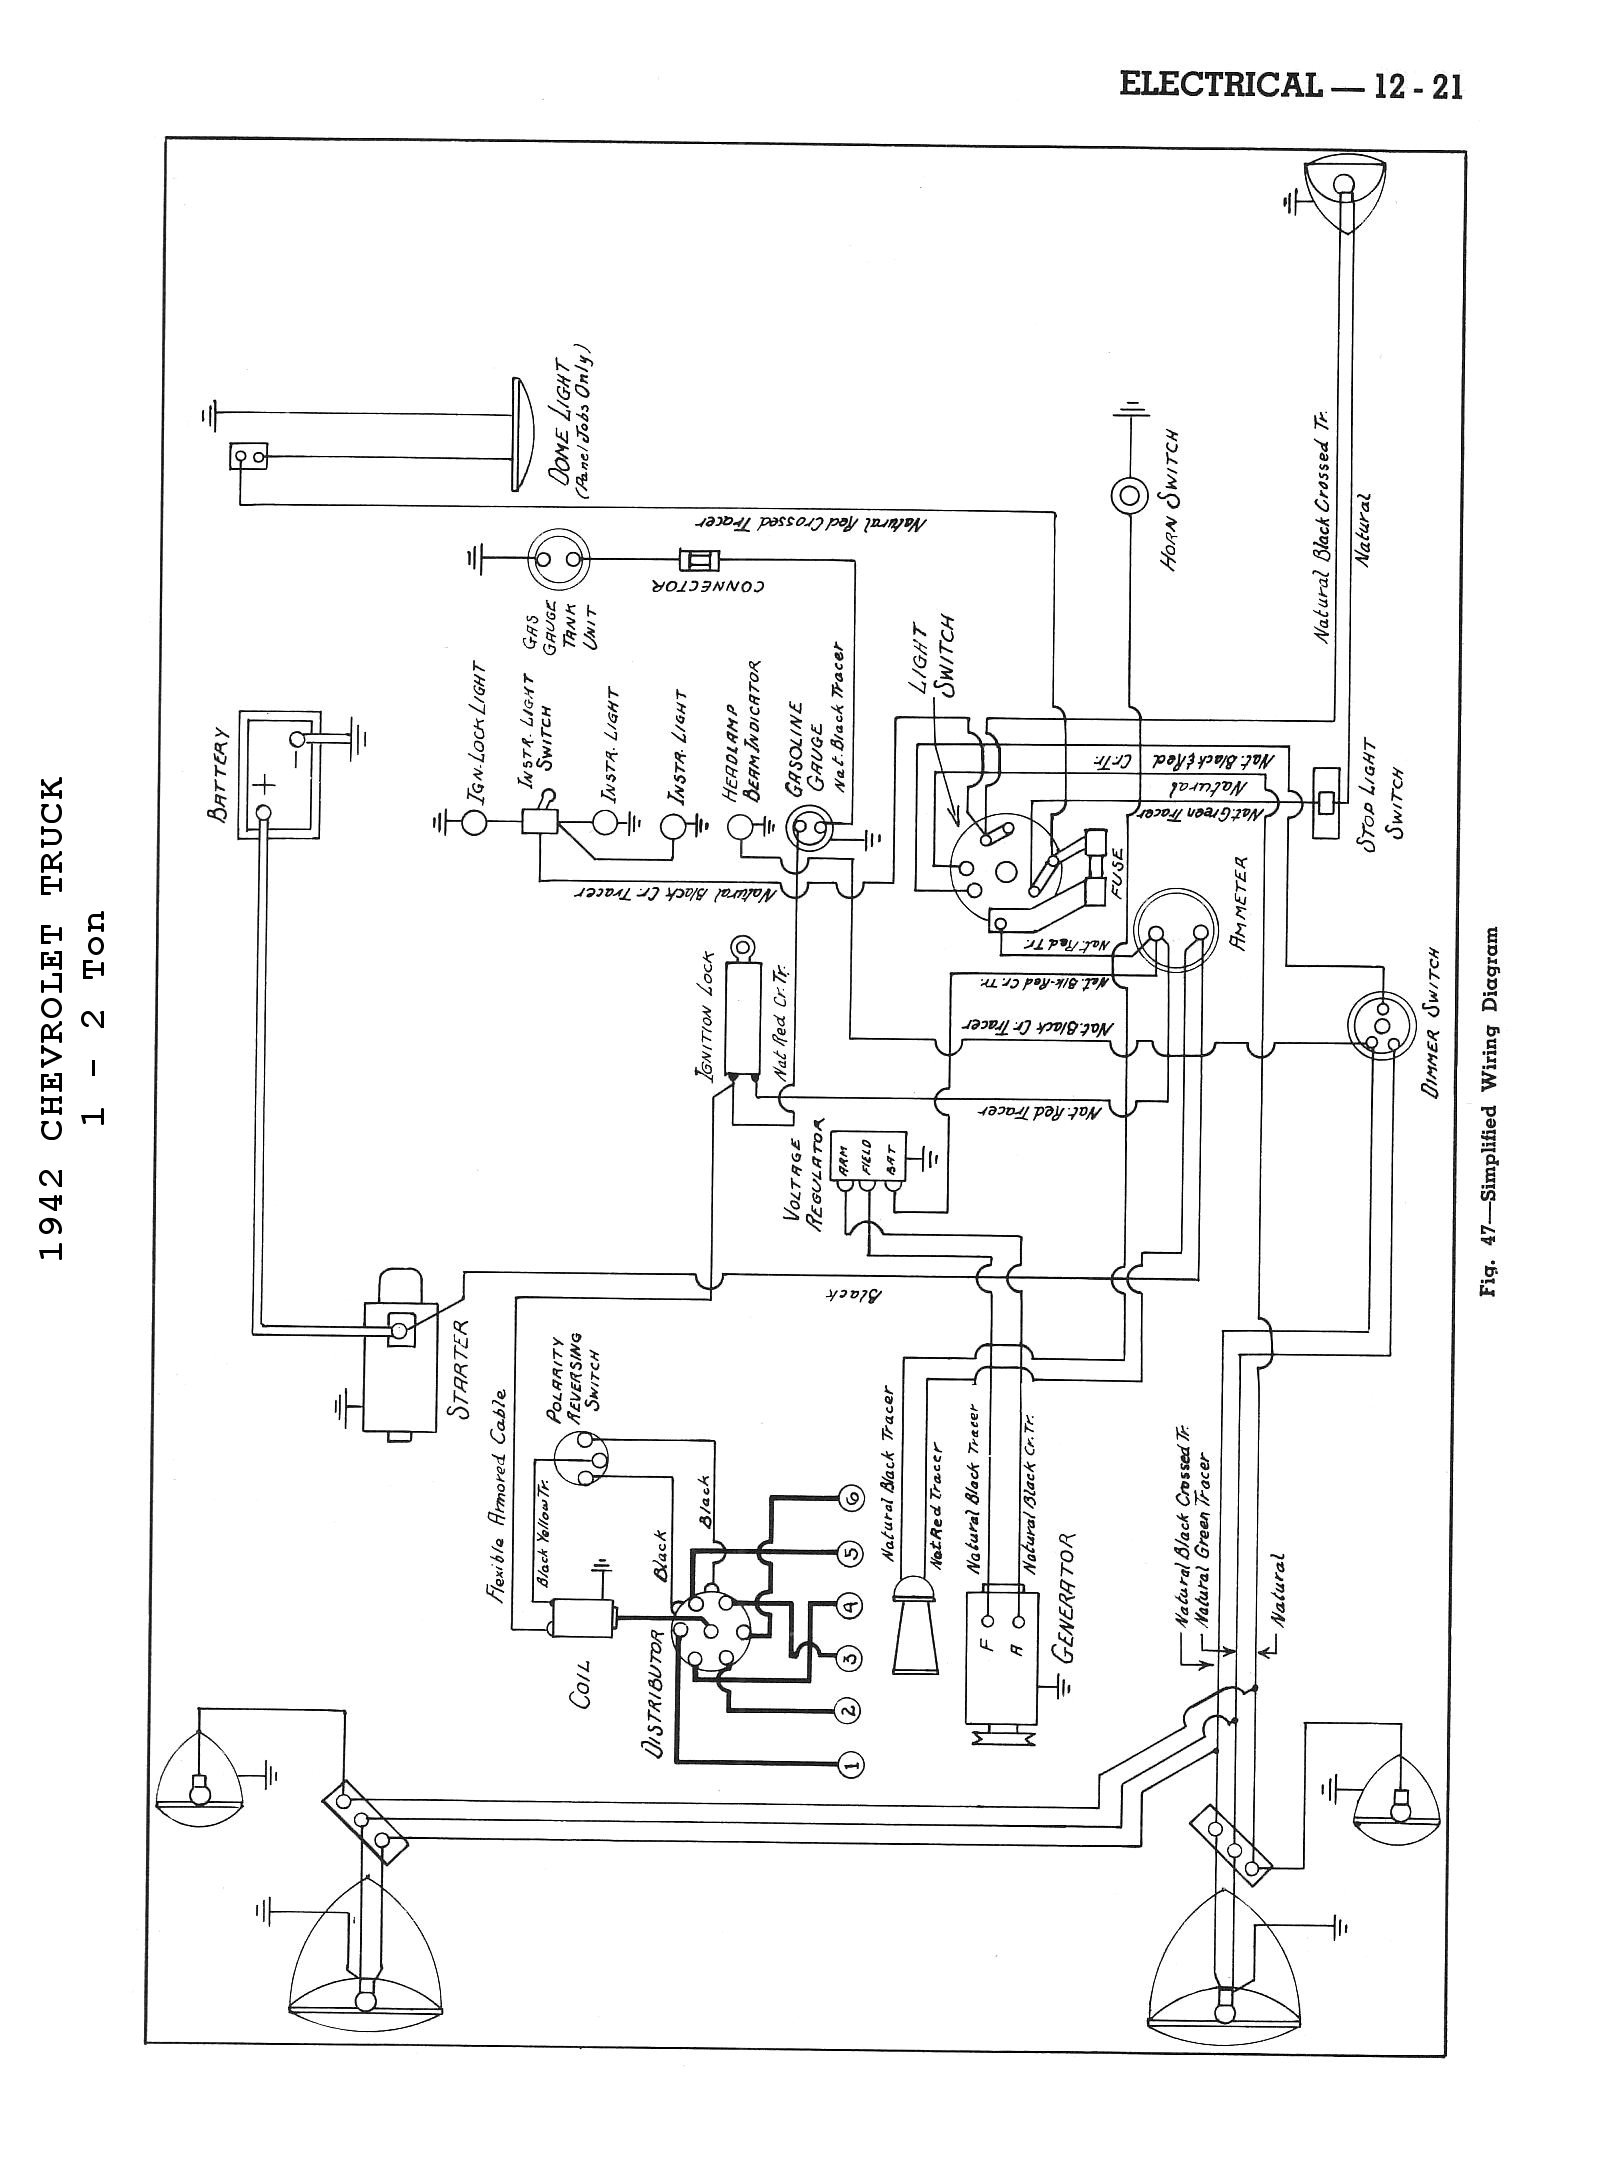 42cm4x2t1221 cm wiring diagram cm hoist wiring diagram \u2022 wiring diagrams j Wiring Harness Diagram at virtualis.co